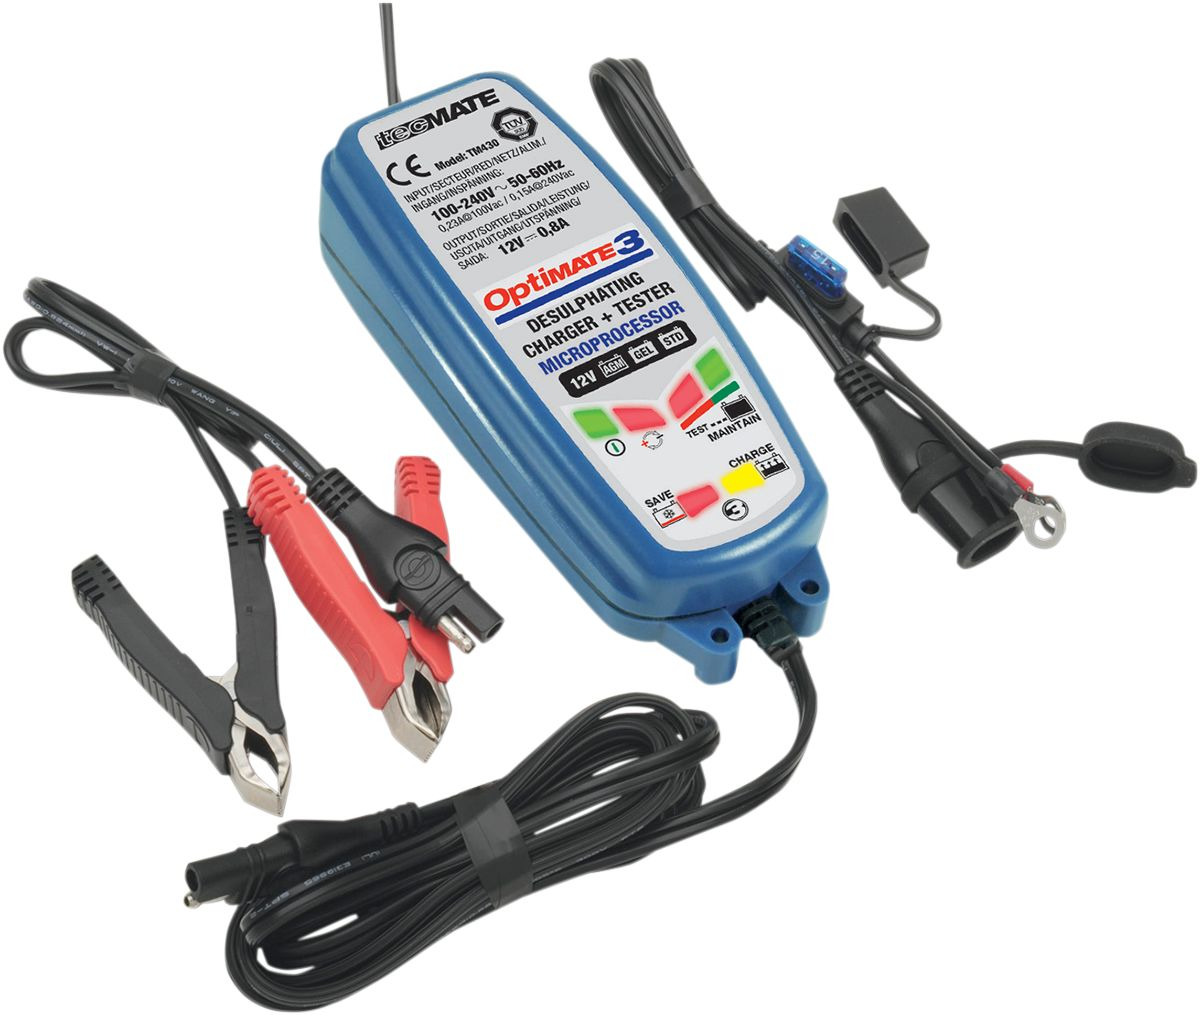 CHARGER OPTIMATE 3